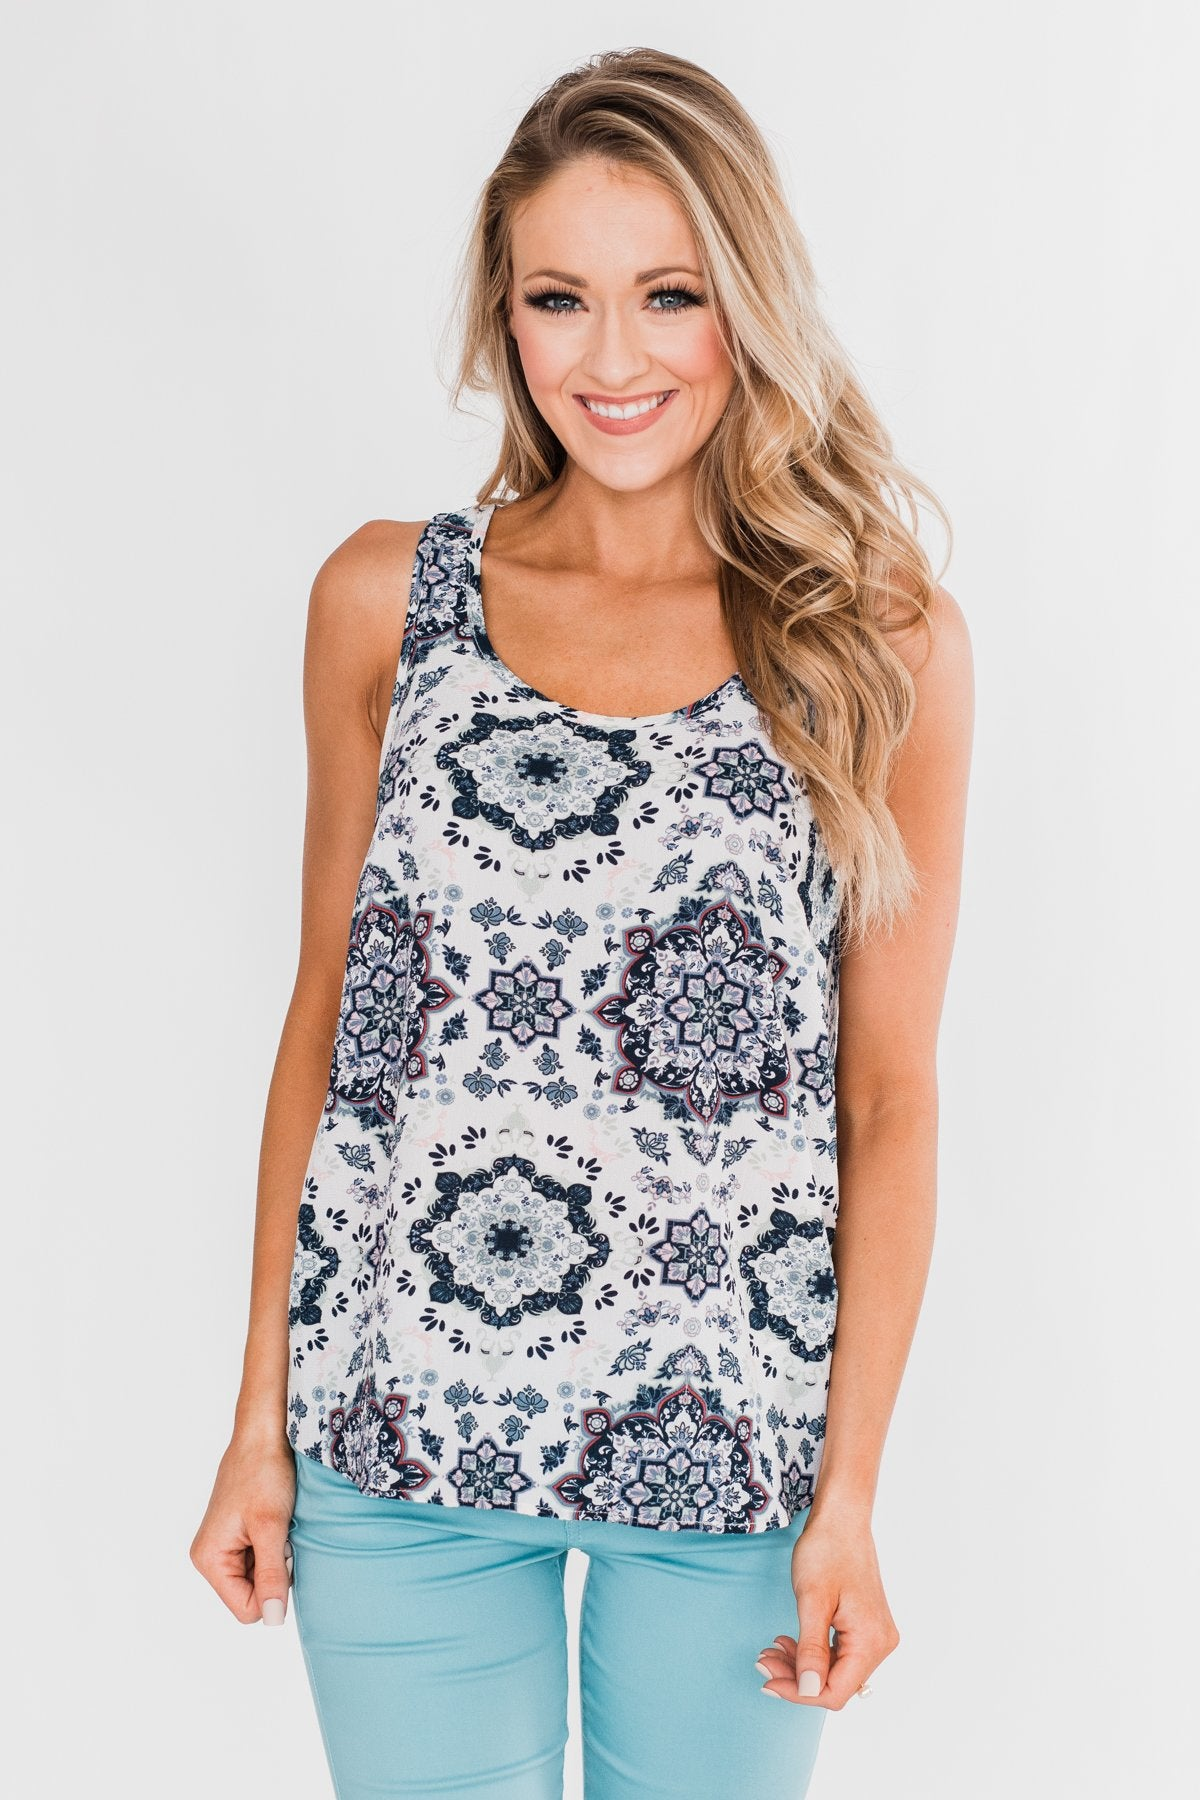 Not Giving Up Floral Tank Top- Ivory